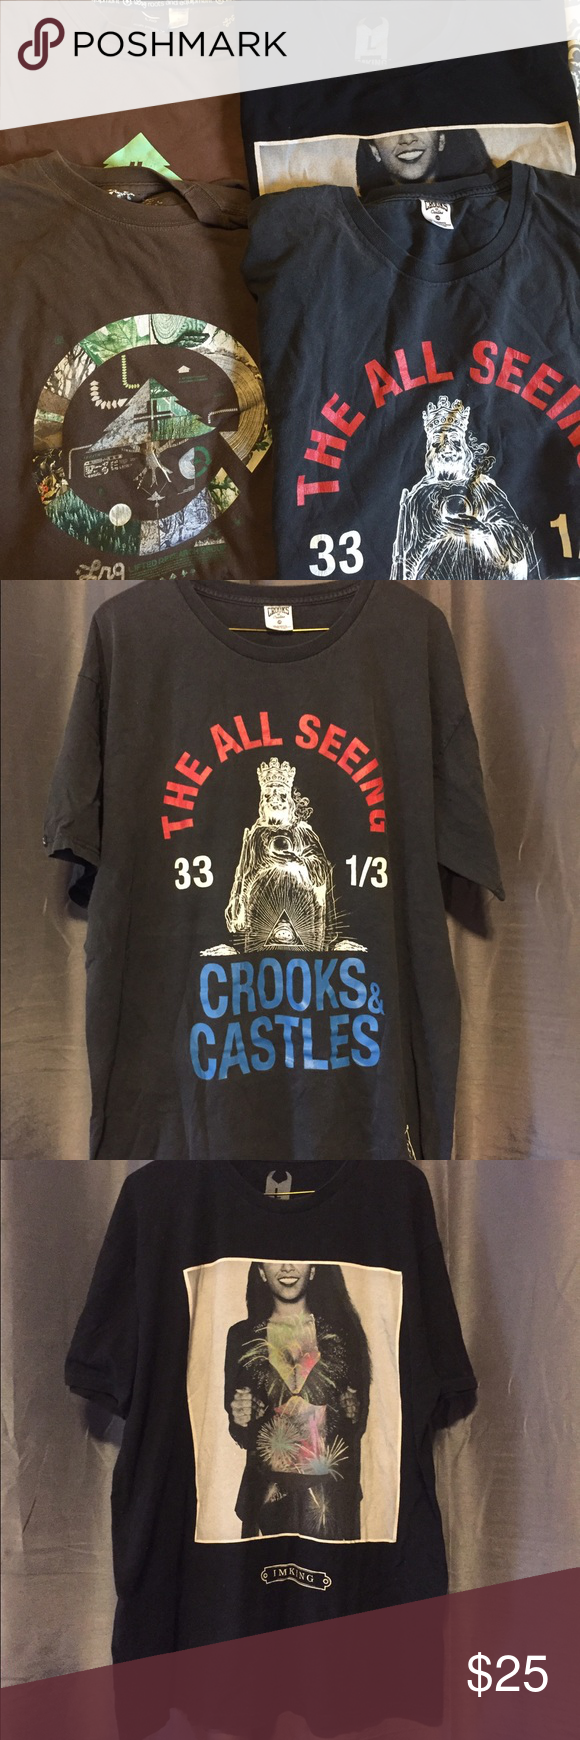 4 Men's T Shirts- Crooks & Castles, IMKING, & LRG Worn and loved ❤️ All size large. All have minor flaws, but still lots of life. Can take more pictures upon request ✨ Lrg Shirts Tees - Short Sleeve